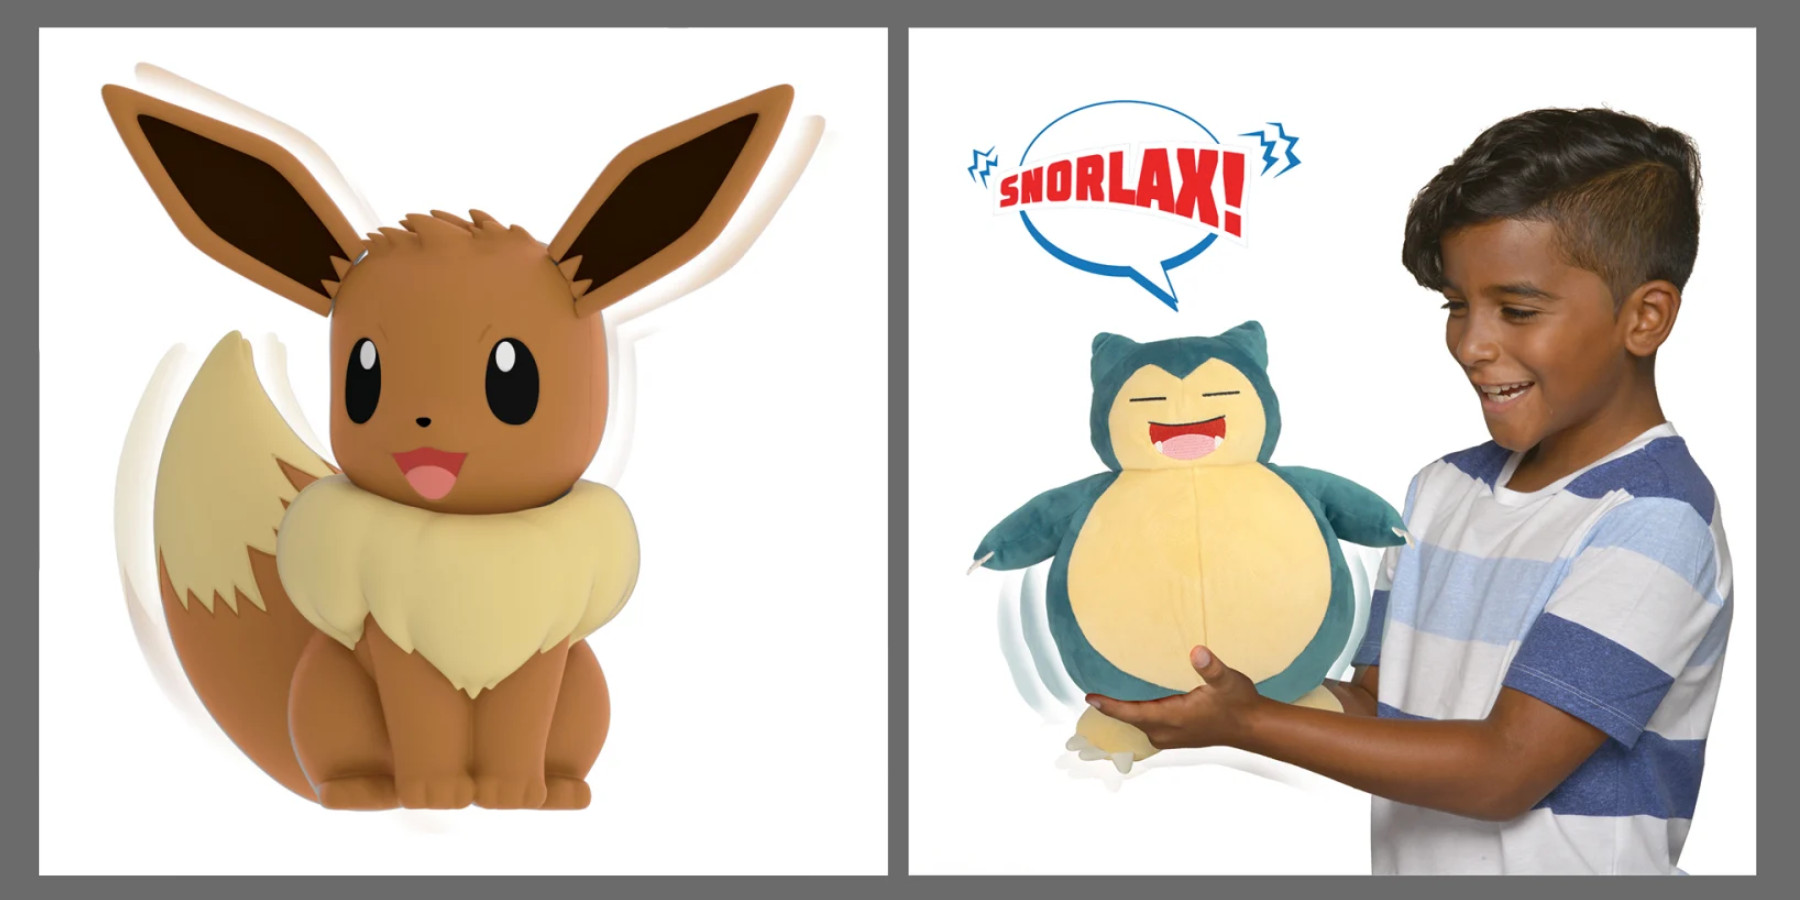 New Pokémon toys inbound: My Partner Eevee and Snorlax - 9to5Toys